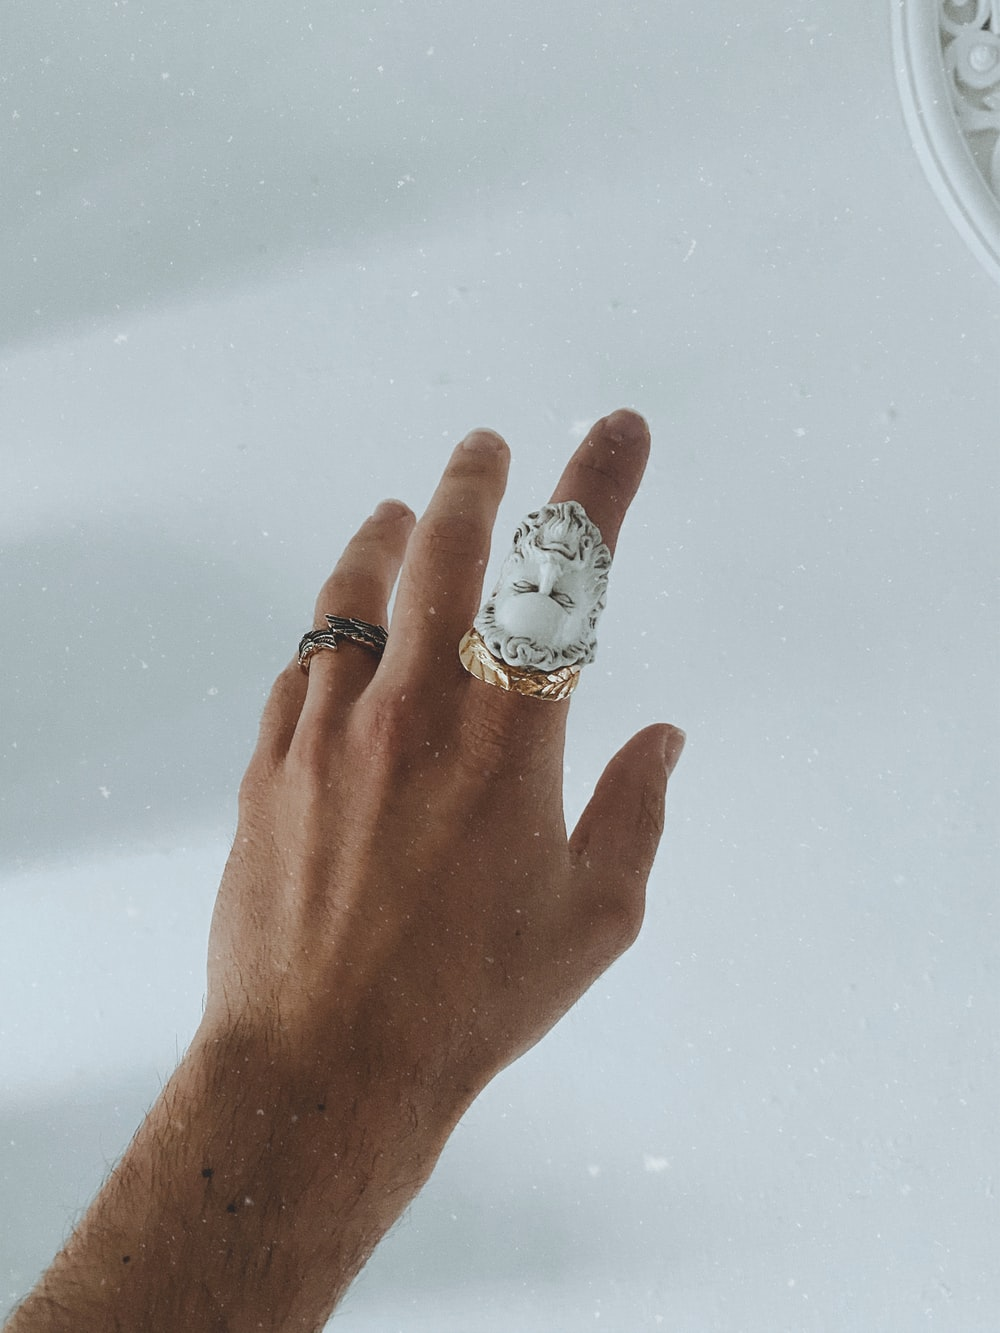 silver and diamond ring on persons finger